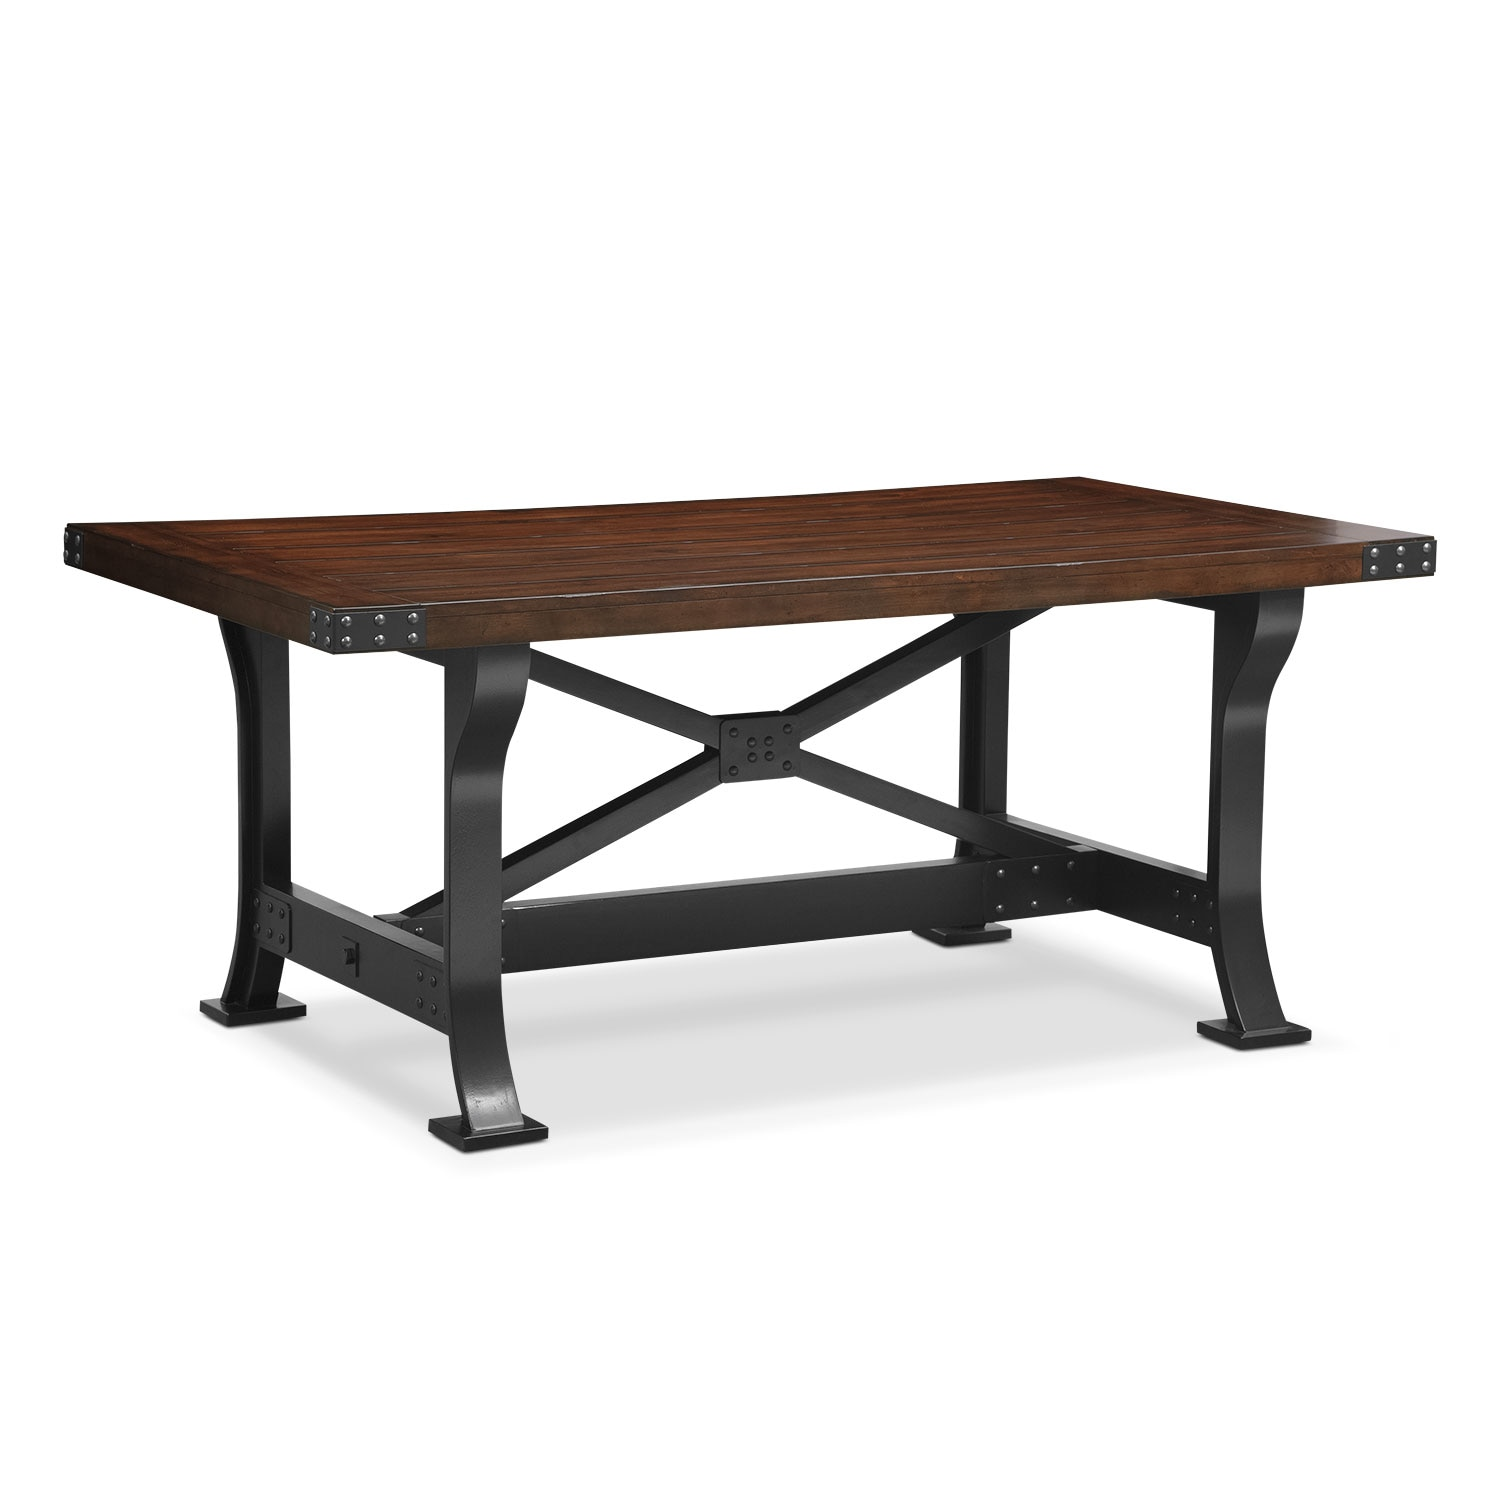 Newcastle Dining Table - Mahogany